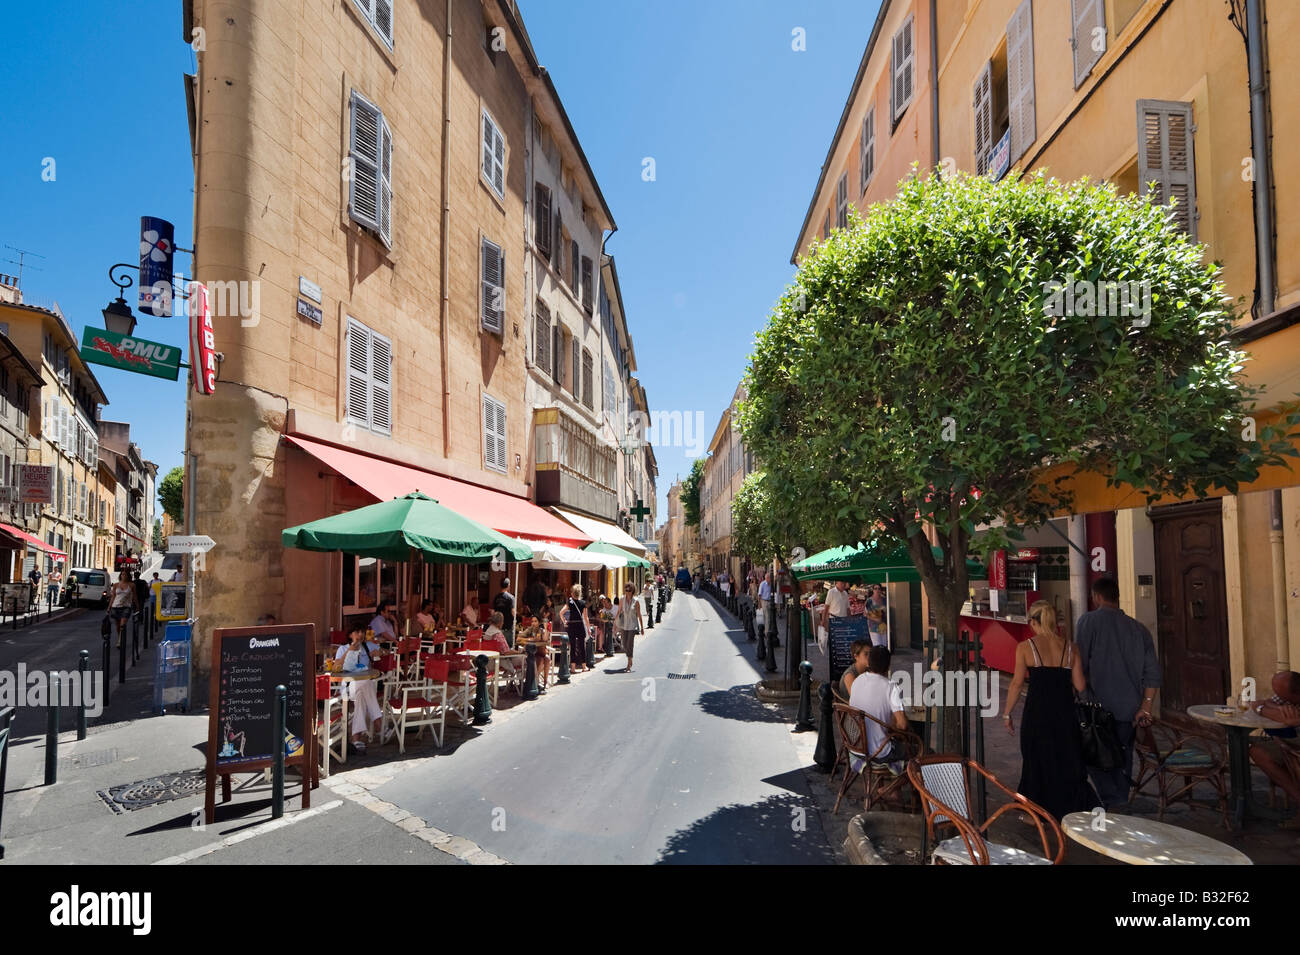 Street cafes on Rue d'Italie in the historic city centre, Aix en Provence, France - Stock Image